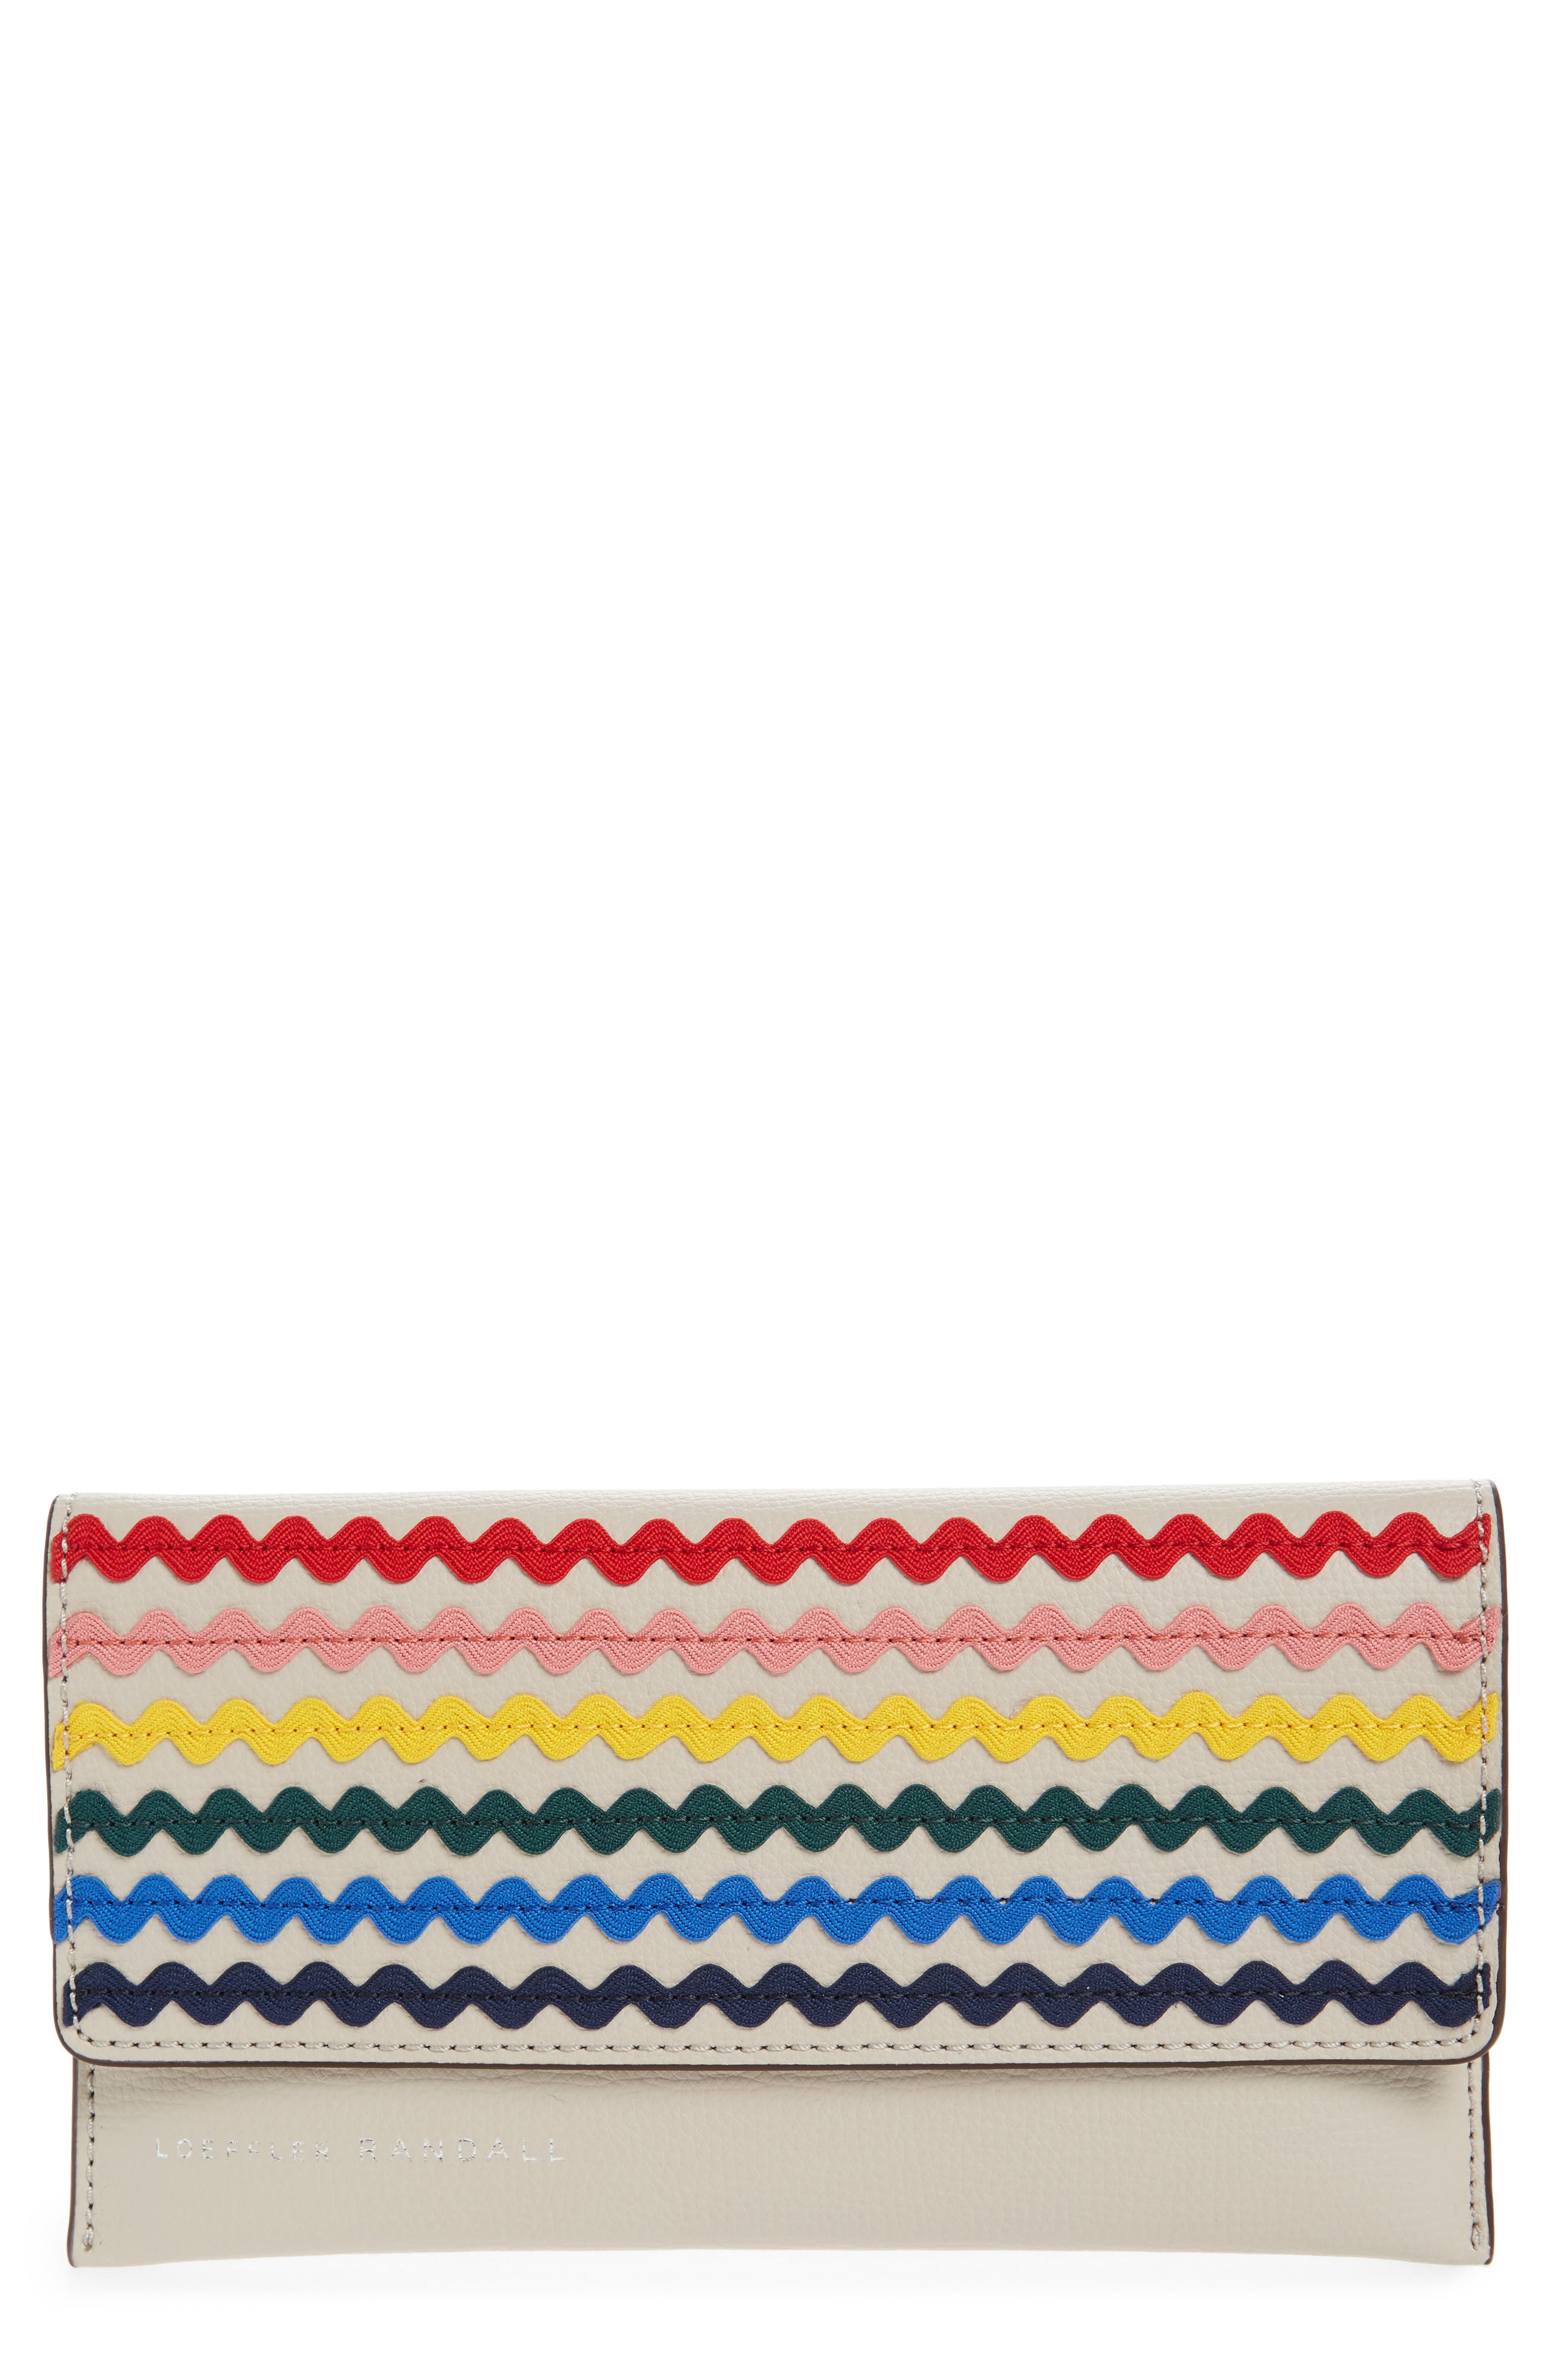 Everything Embellished Leather Wallet,                         Main,                         color, Stone/ Rainbow